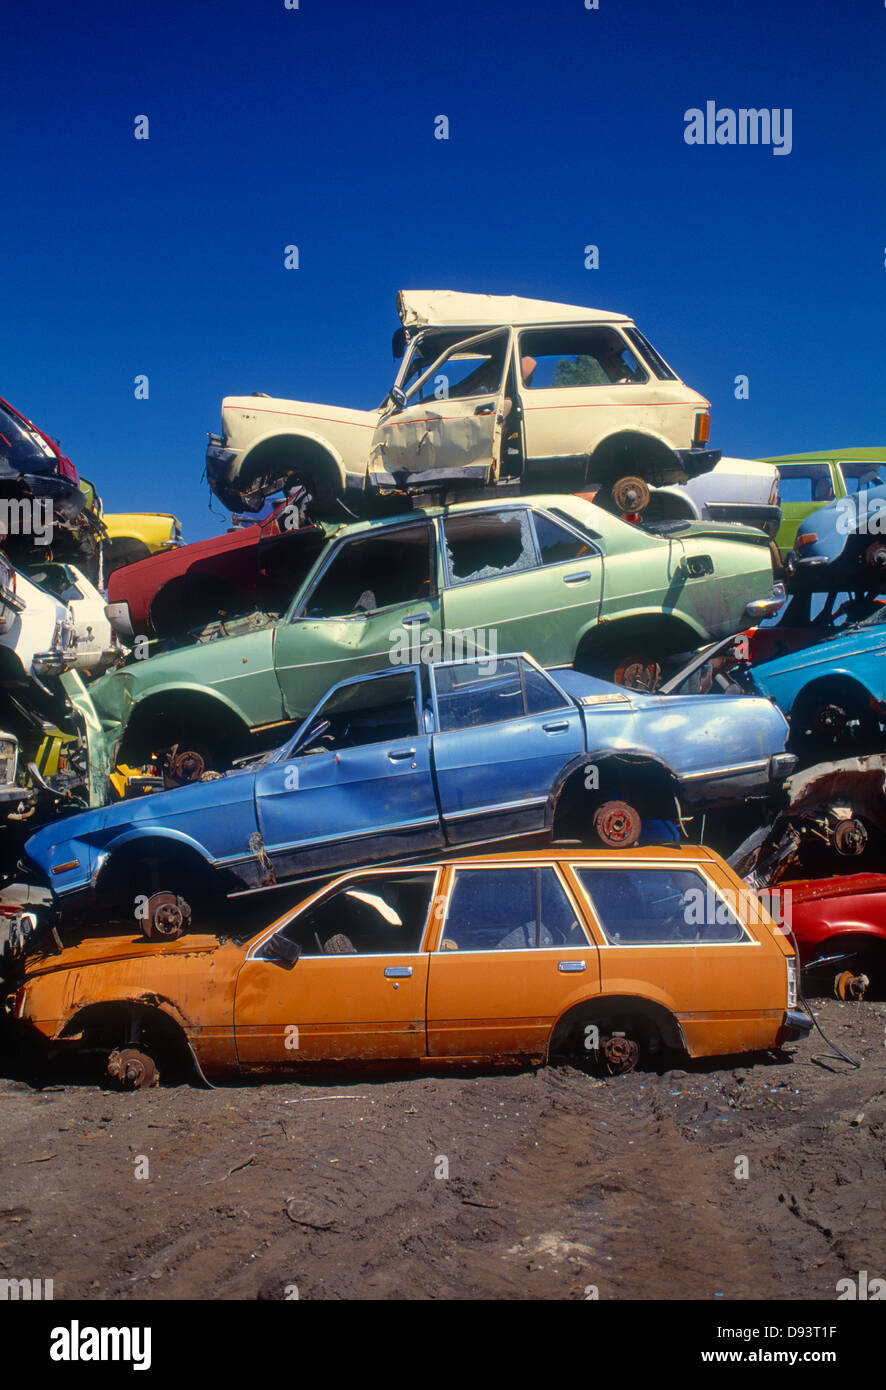 Stack of wrecked cars in junkyard Stock Photo: 57247723 - Alamy